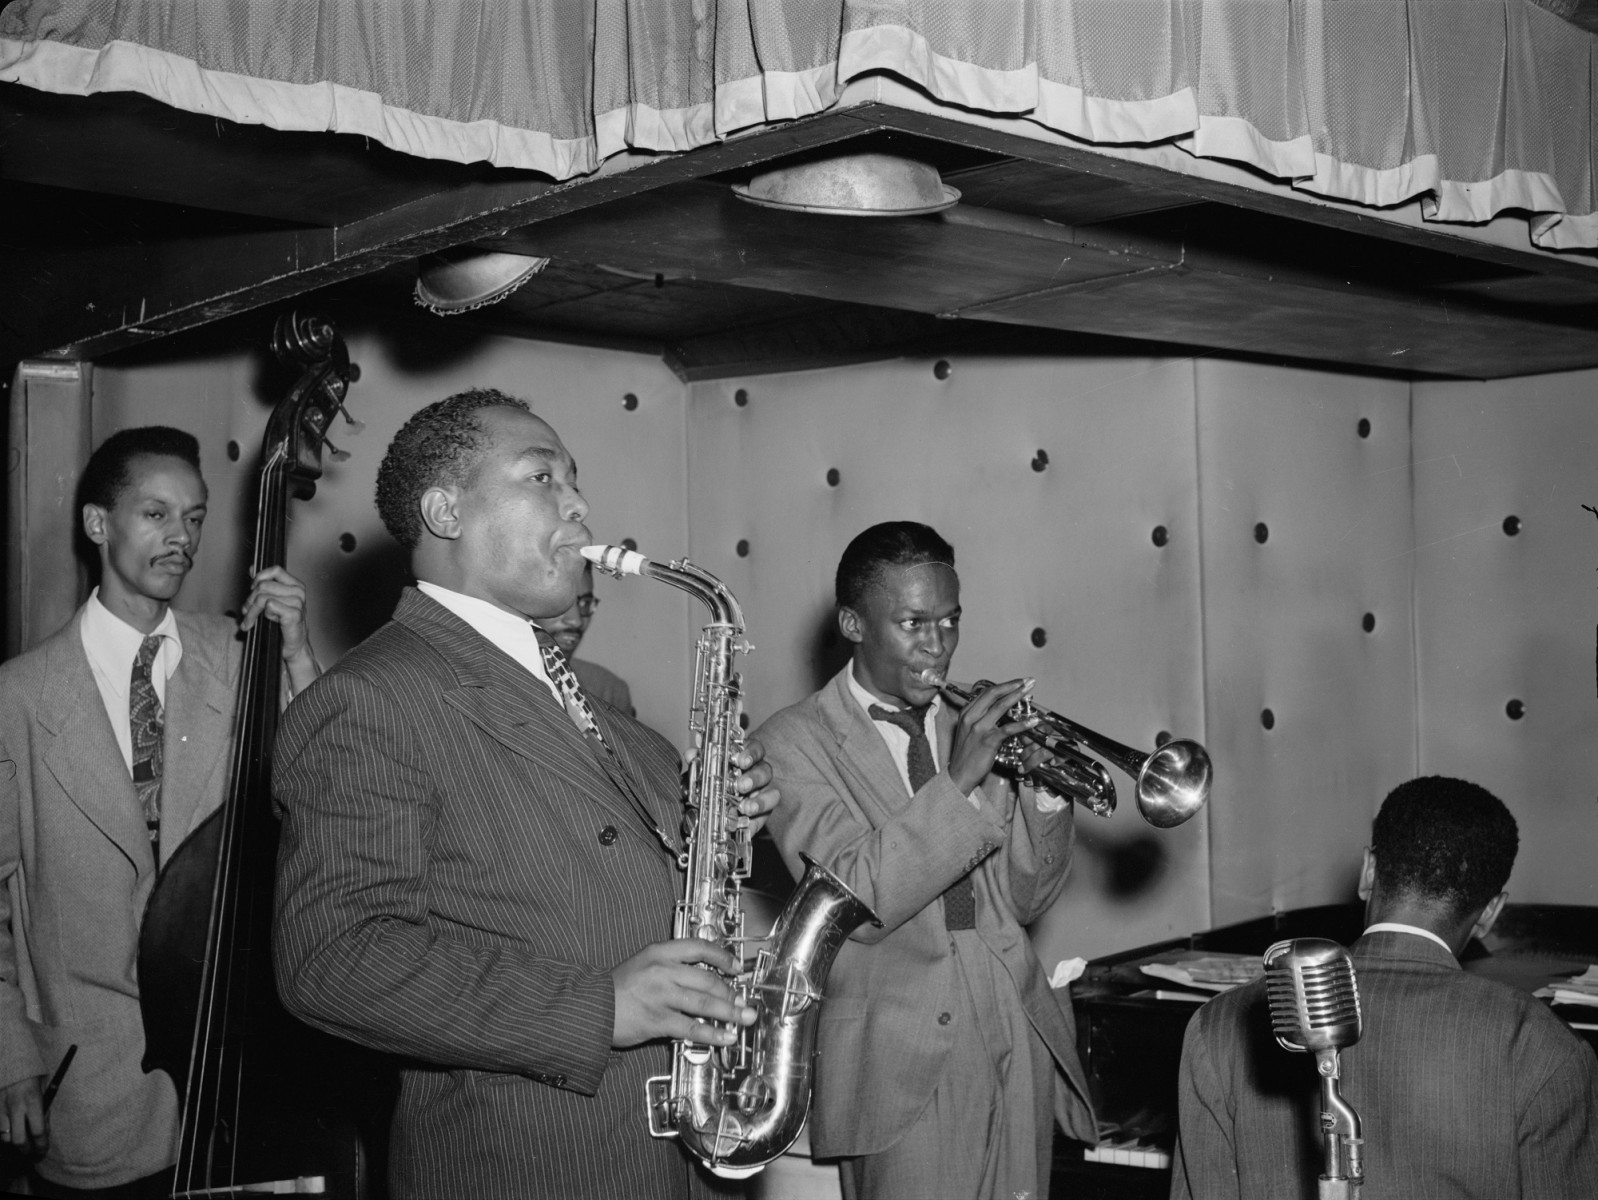 Charlie Parker, Tommy Potter, Miles Davis, Duke Jordan and Max Roach at Three Deuces, New York, N.Y in 1947